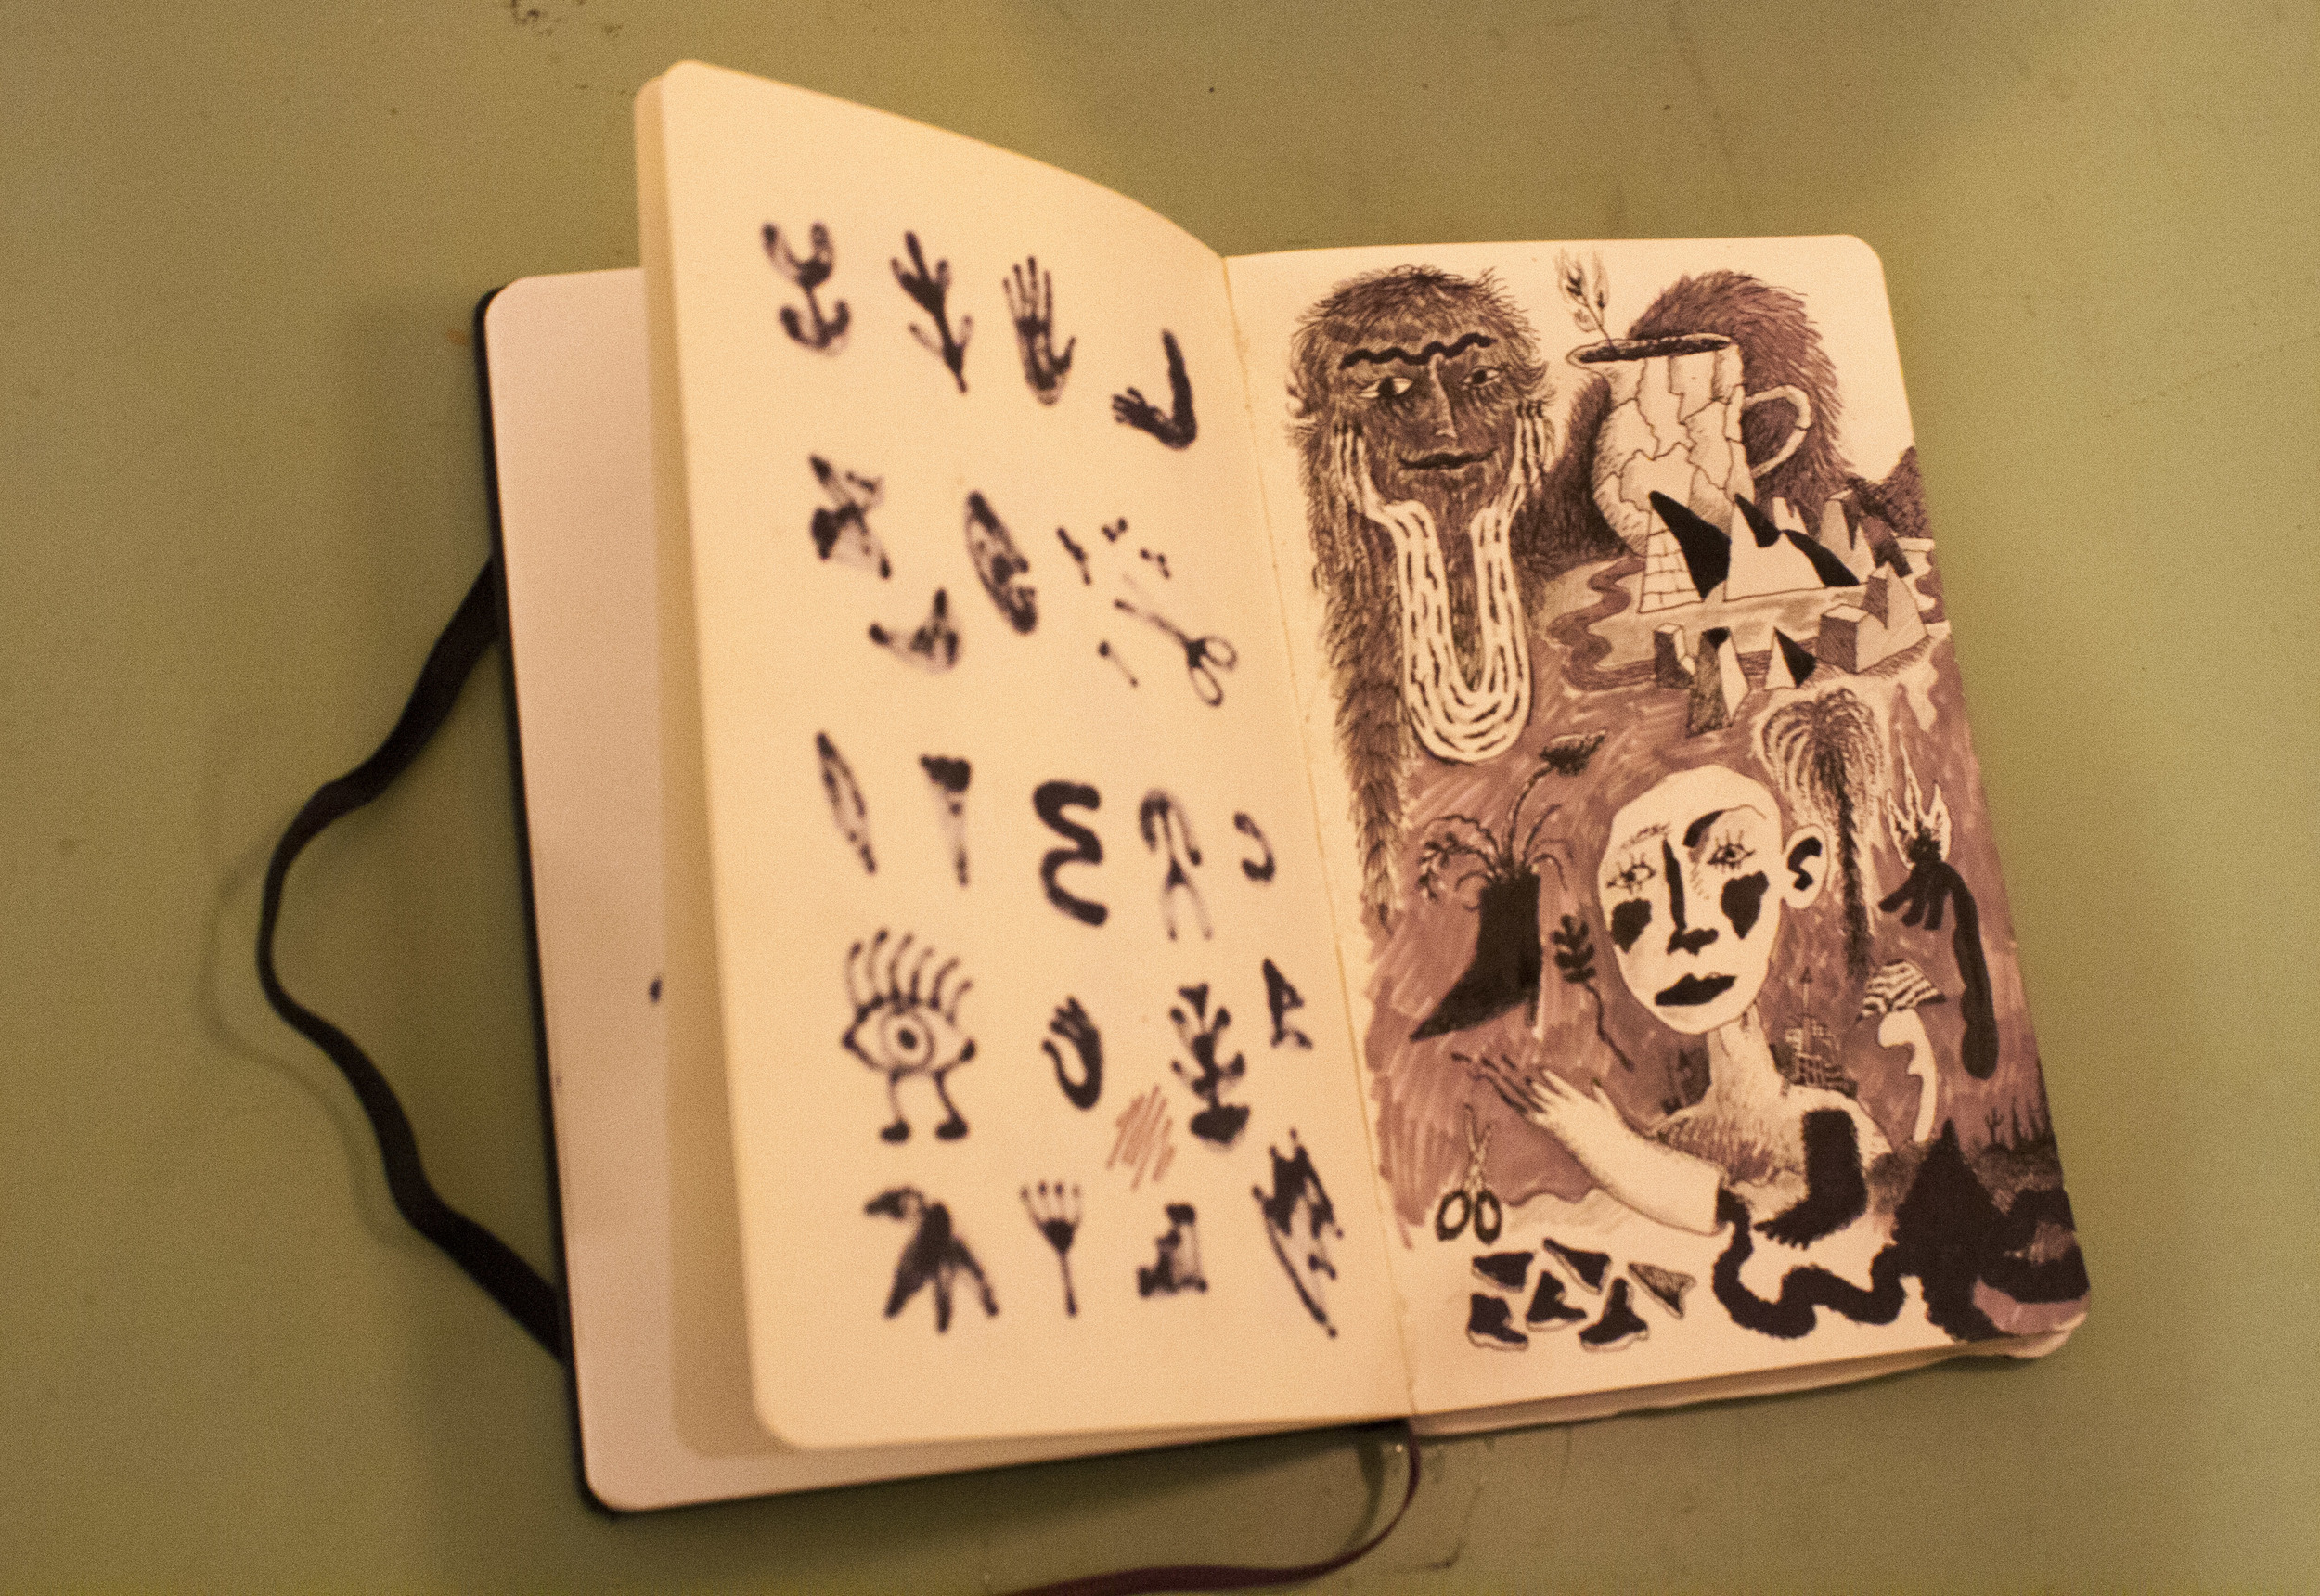 Juliana's current sketchbook. She fills up about 5-6 of these per year.